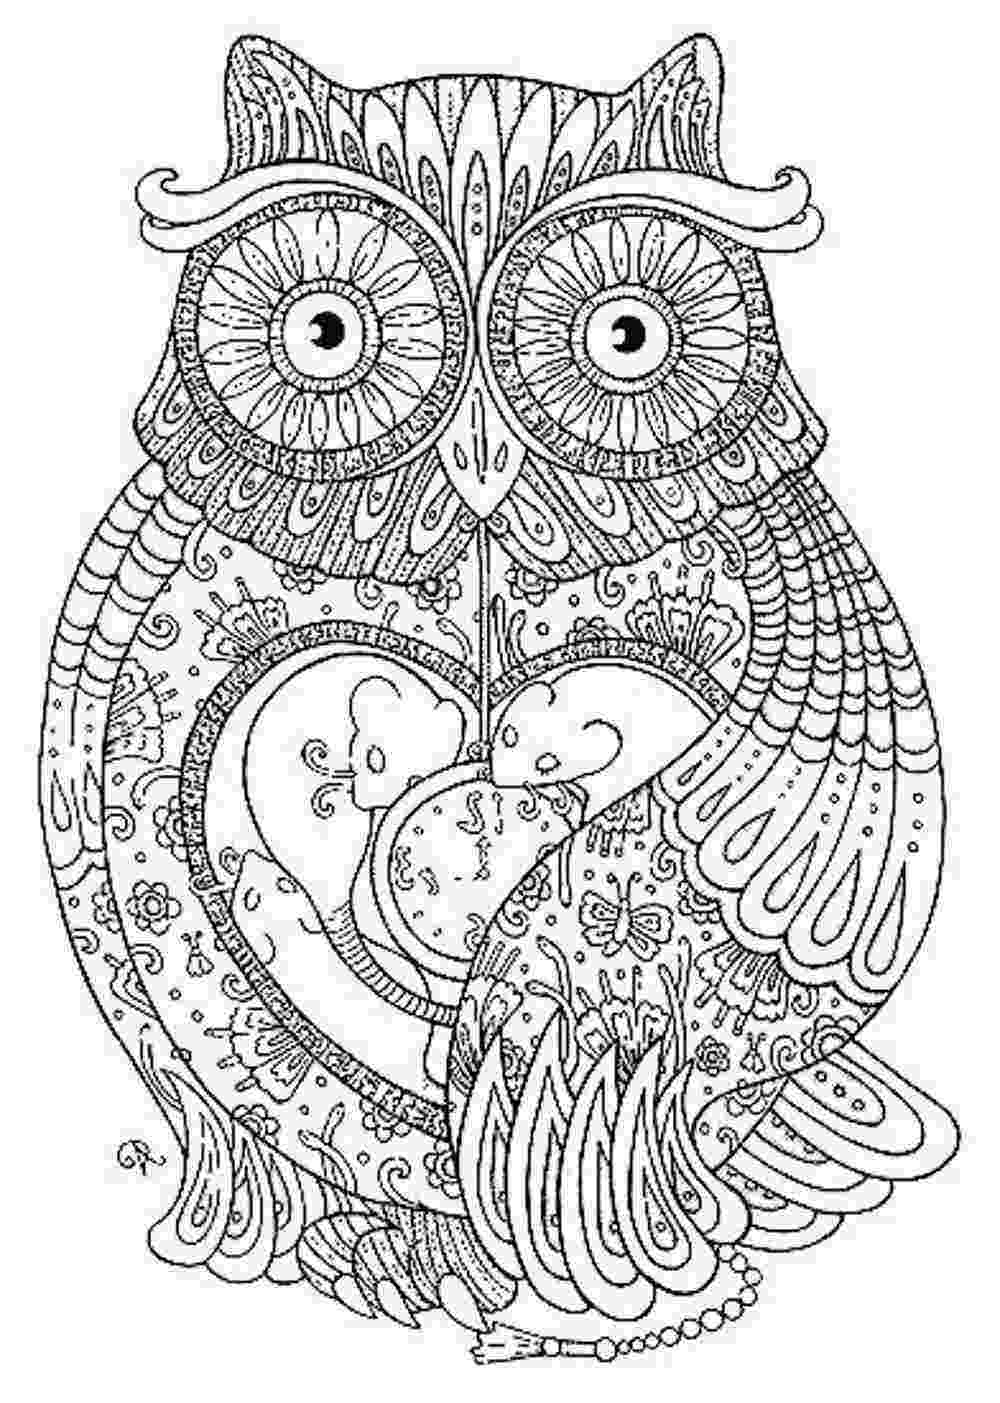 adult coloring pages online owl coloring pages for adults free detailed owl coloring pages adult online coloring